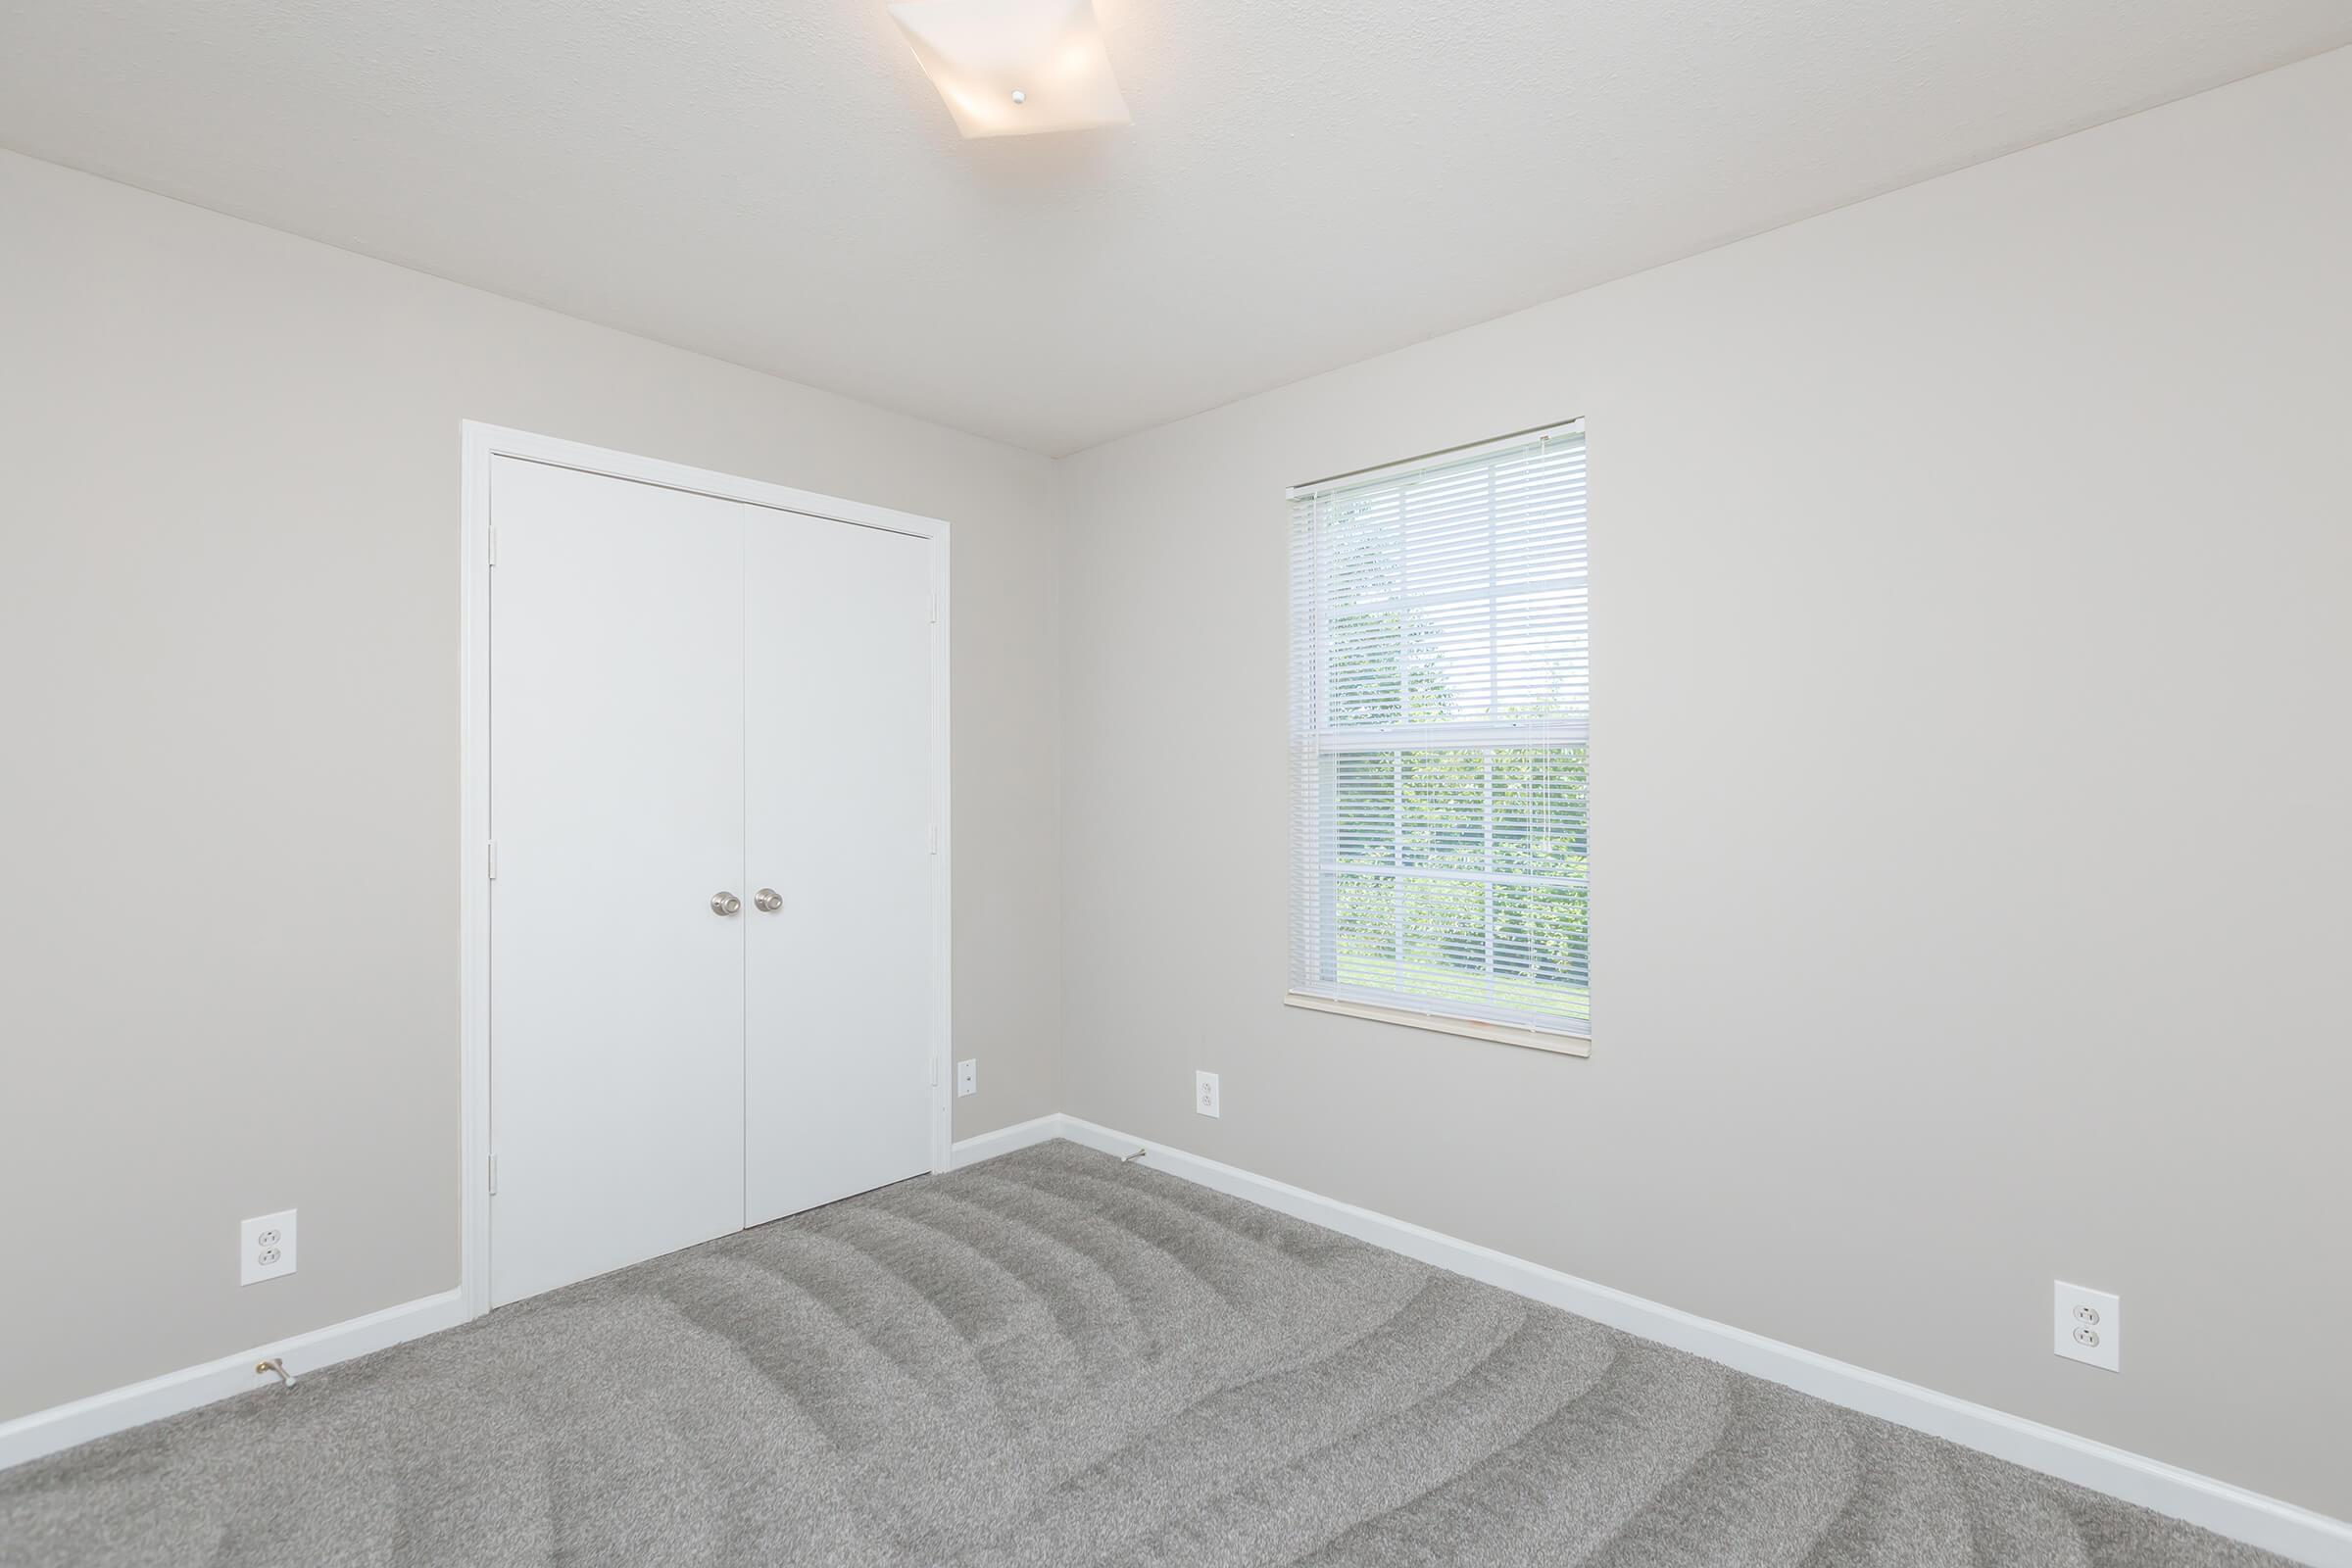 Bedroom at SummerTrees Apartments